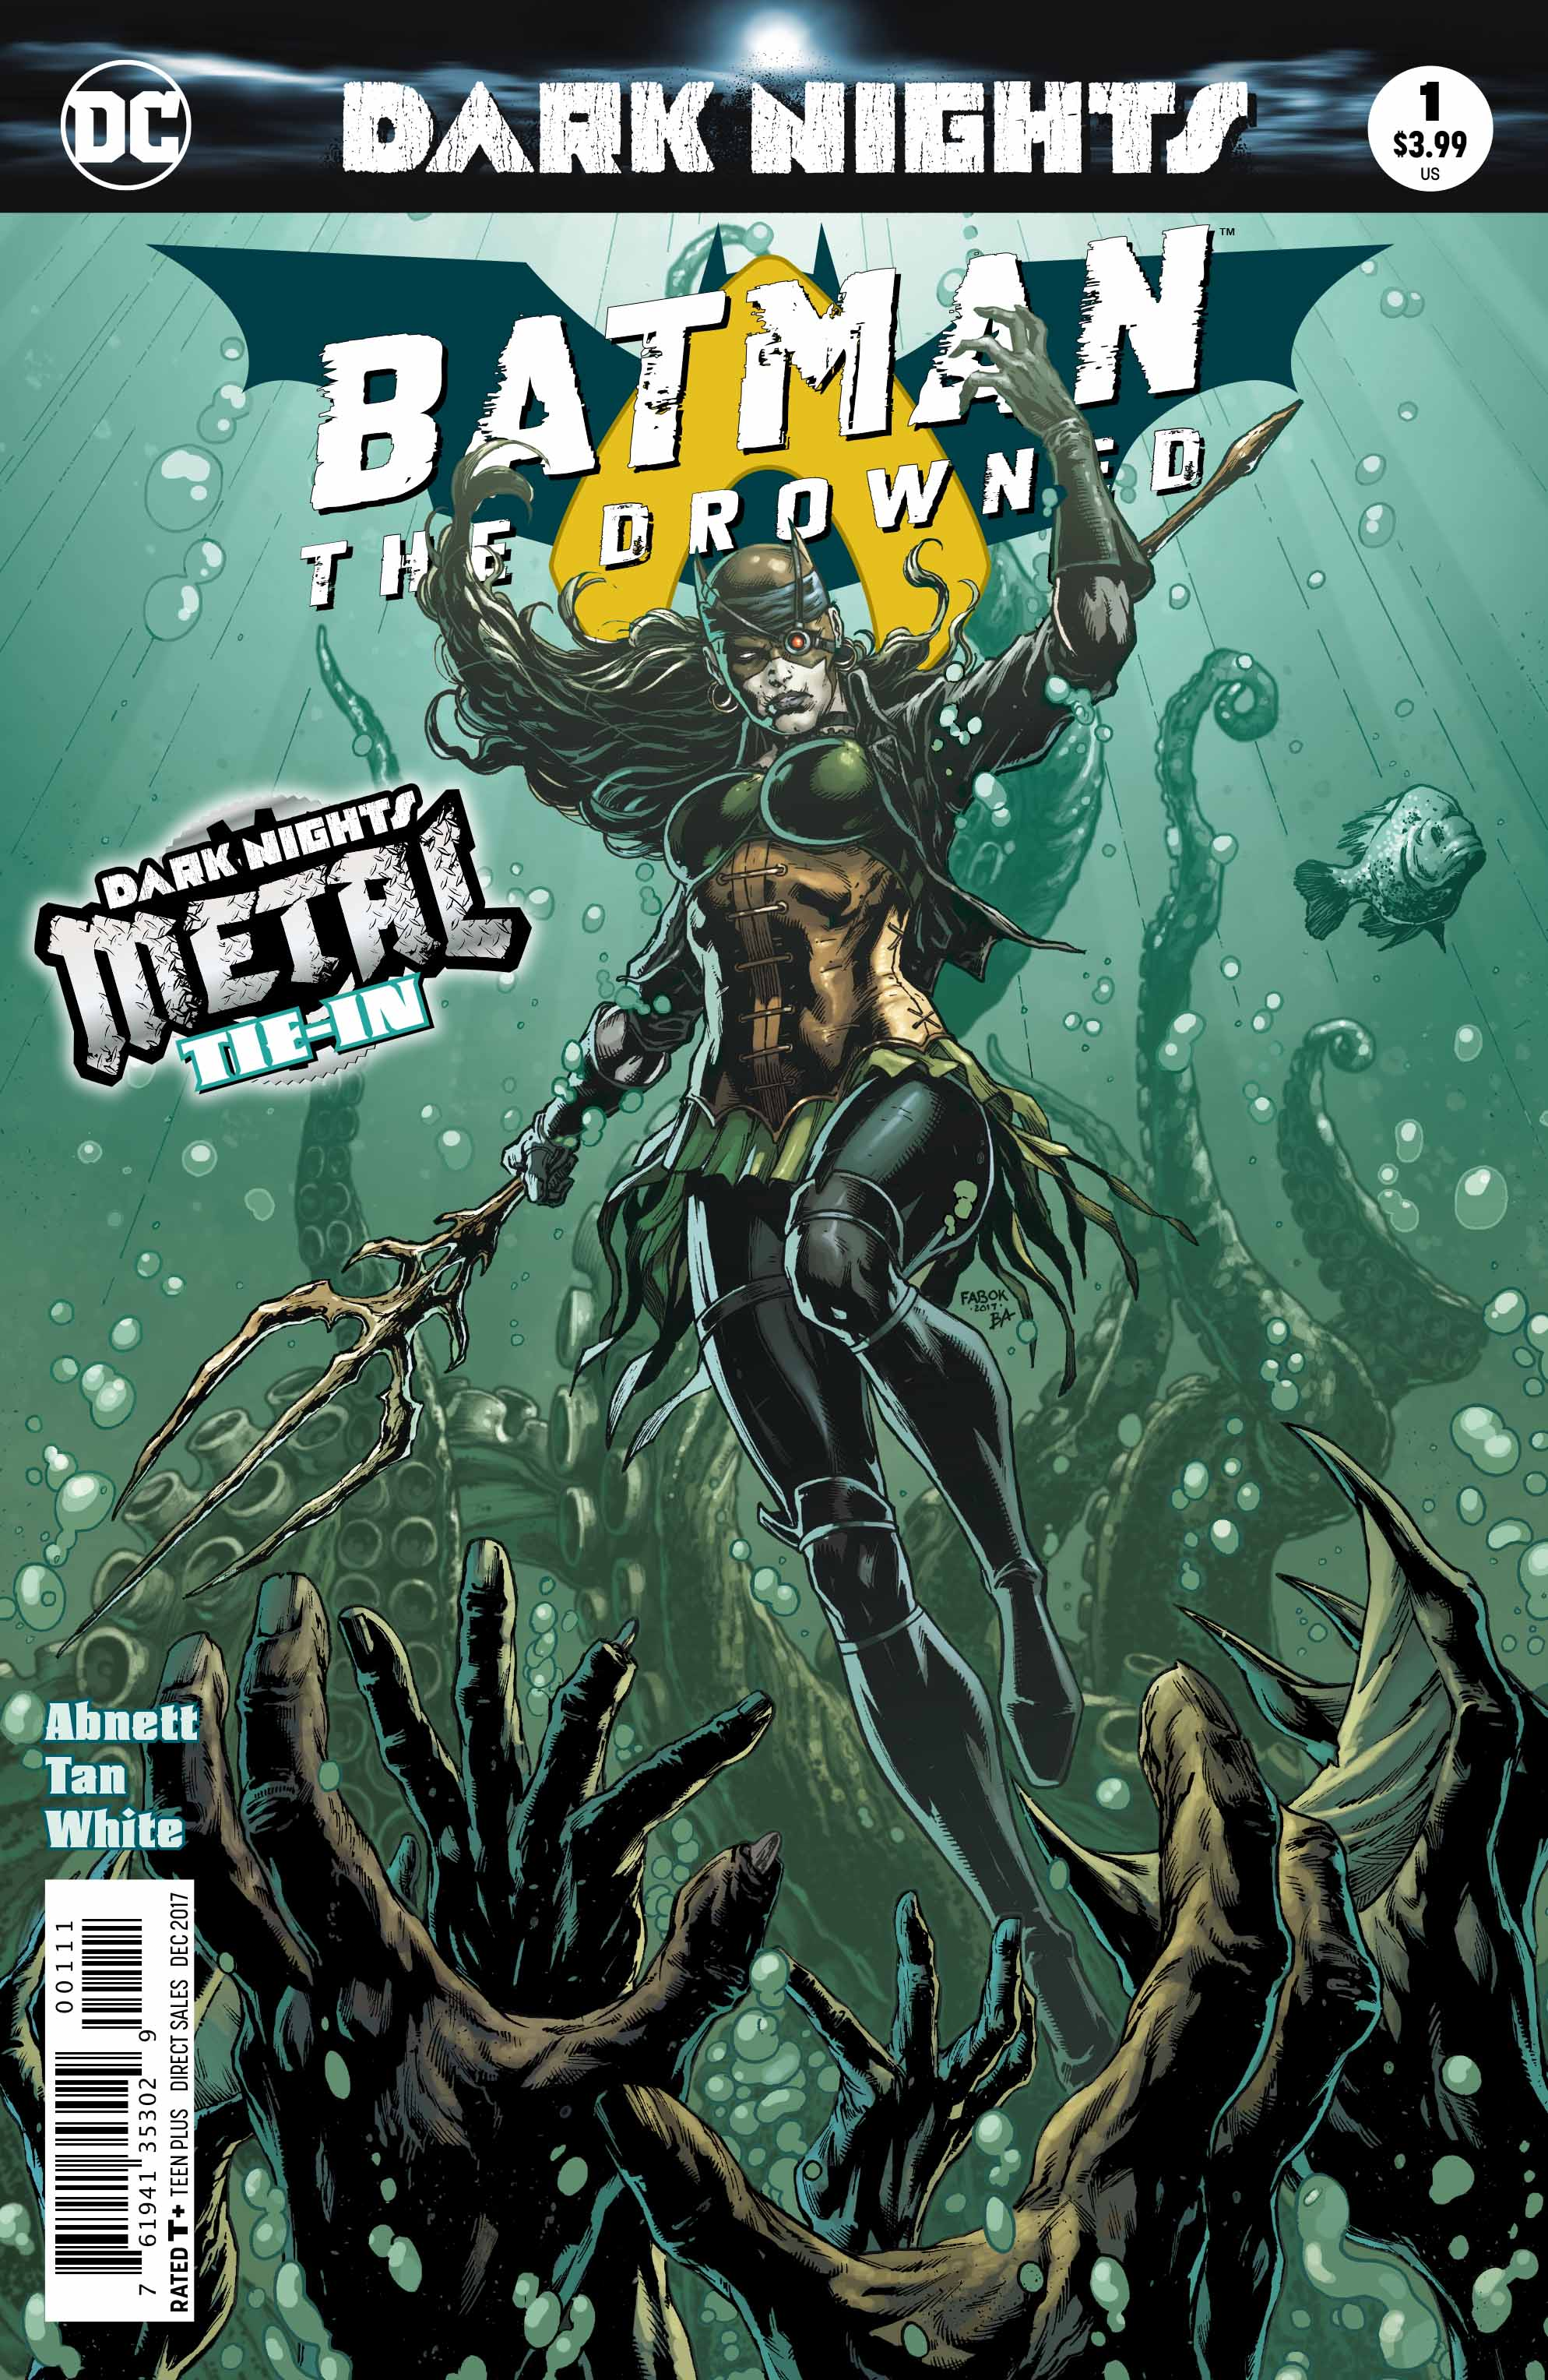 Comic Reviews for October 18, 2017